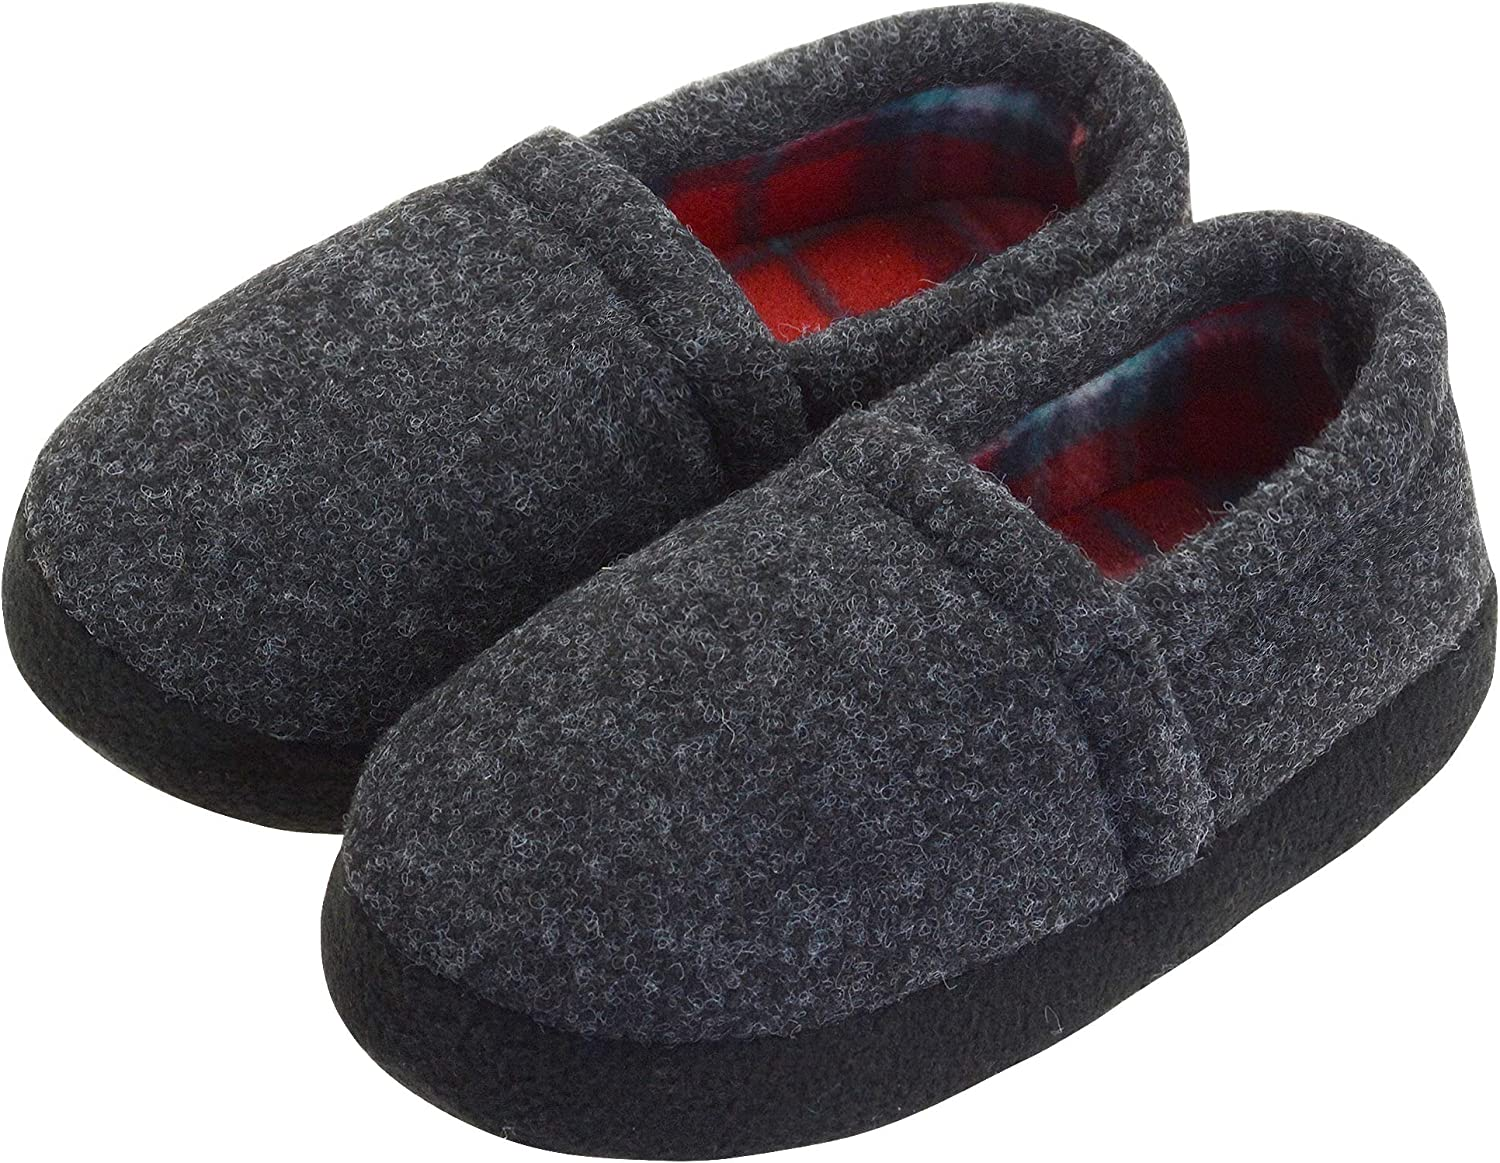 VLLy Slippers Choice for Boys New mail order Camo Slip-on House Comfy Shoes Warm